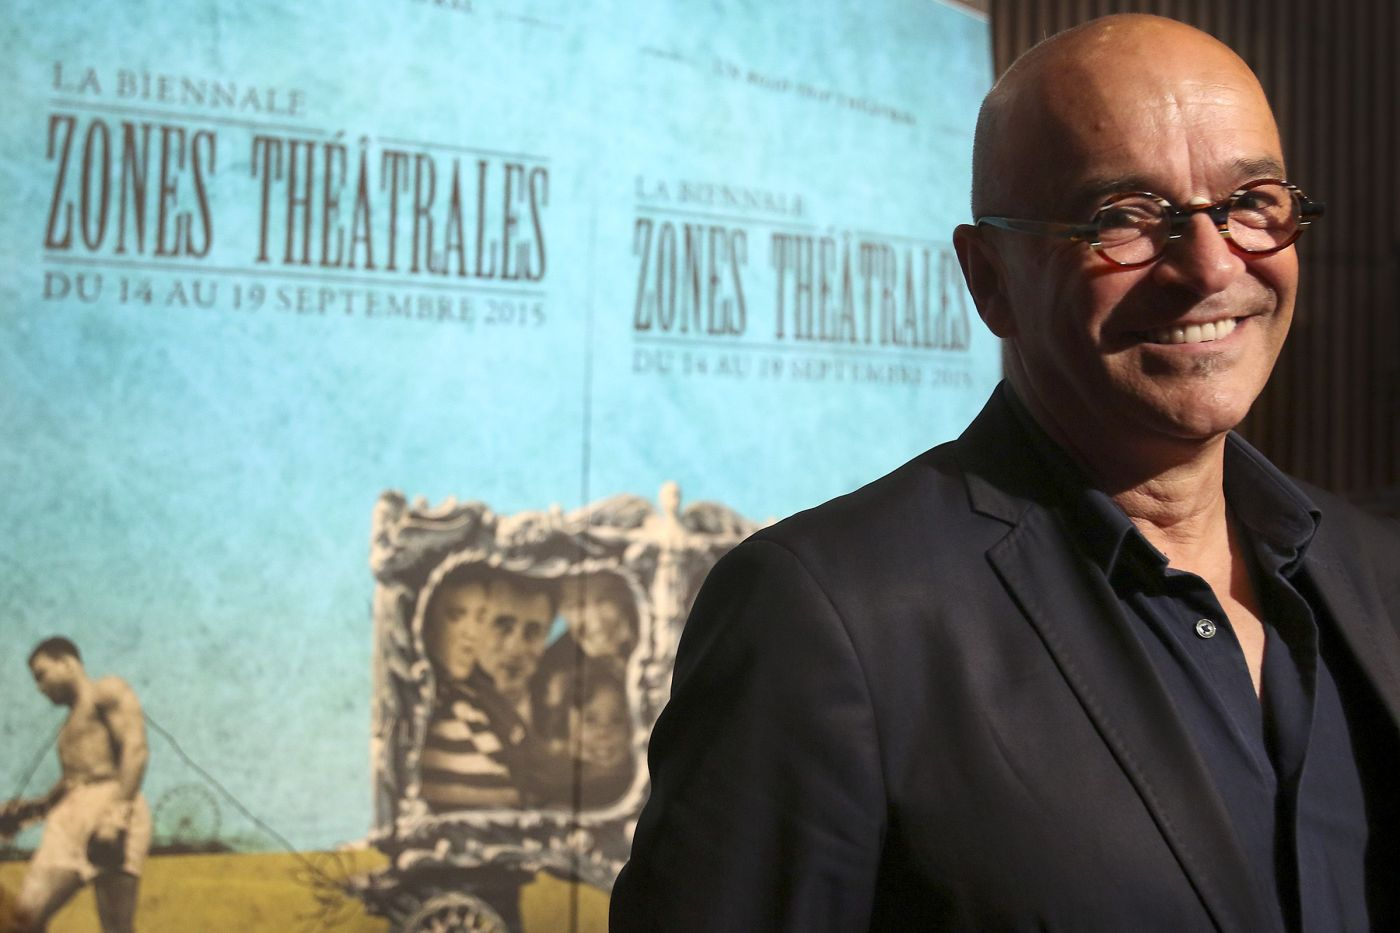 "Colour photograph of a bald, smiling, middle-aged man. He wears glasses and a dark suit, standing in front of pale blue posters bearing the words ""LA BIENNALE ZONES THÉÂTRALES DU 14 AU 19 SEPTEMBRE 2015"""